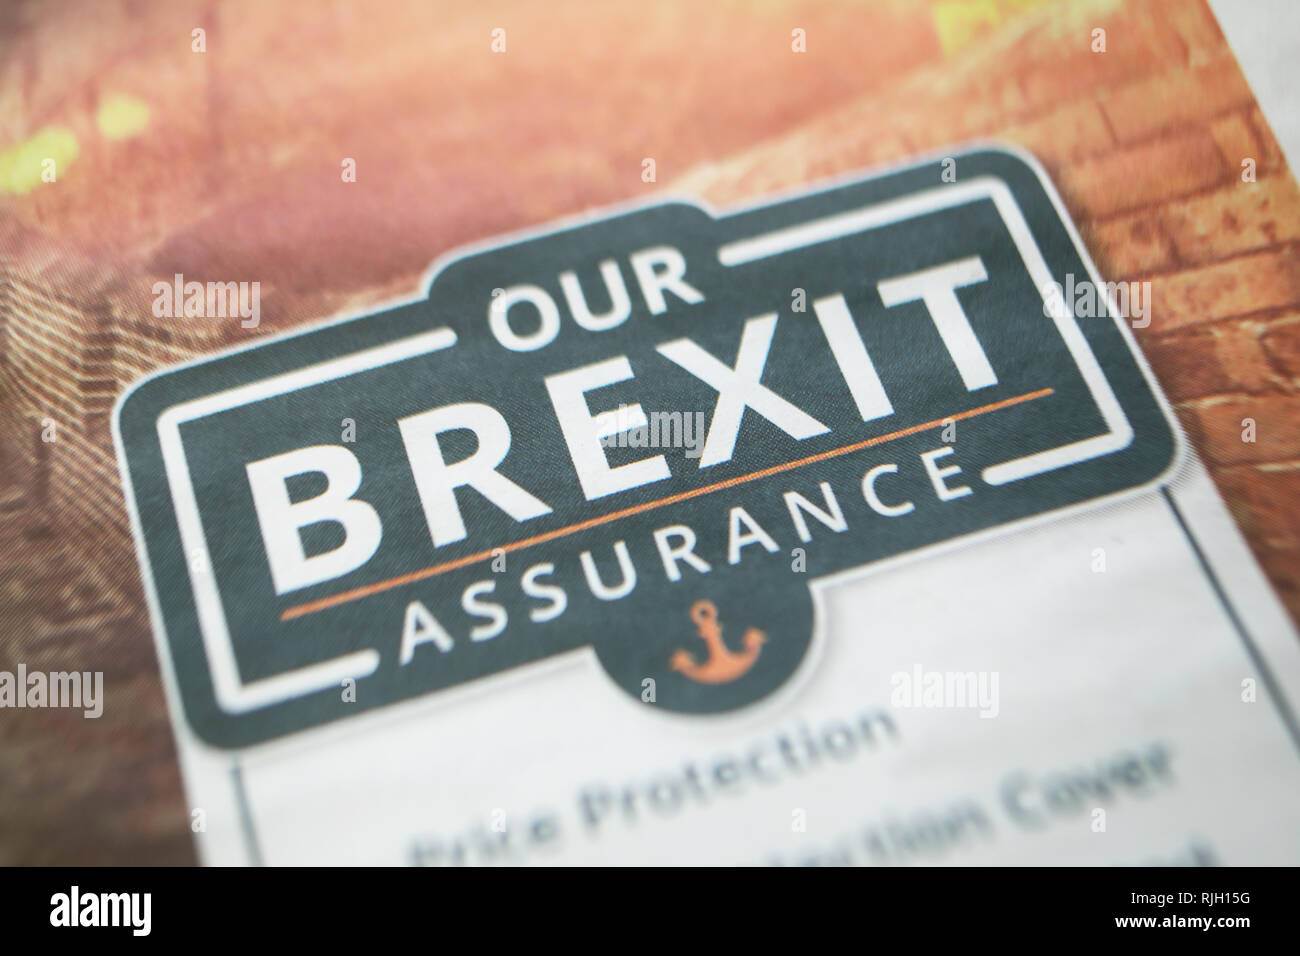 Brexit Assurance for travel companies trying to sell holidays after Brexit, in the UK - Stock Image